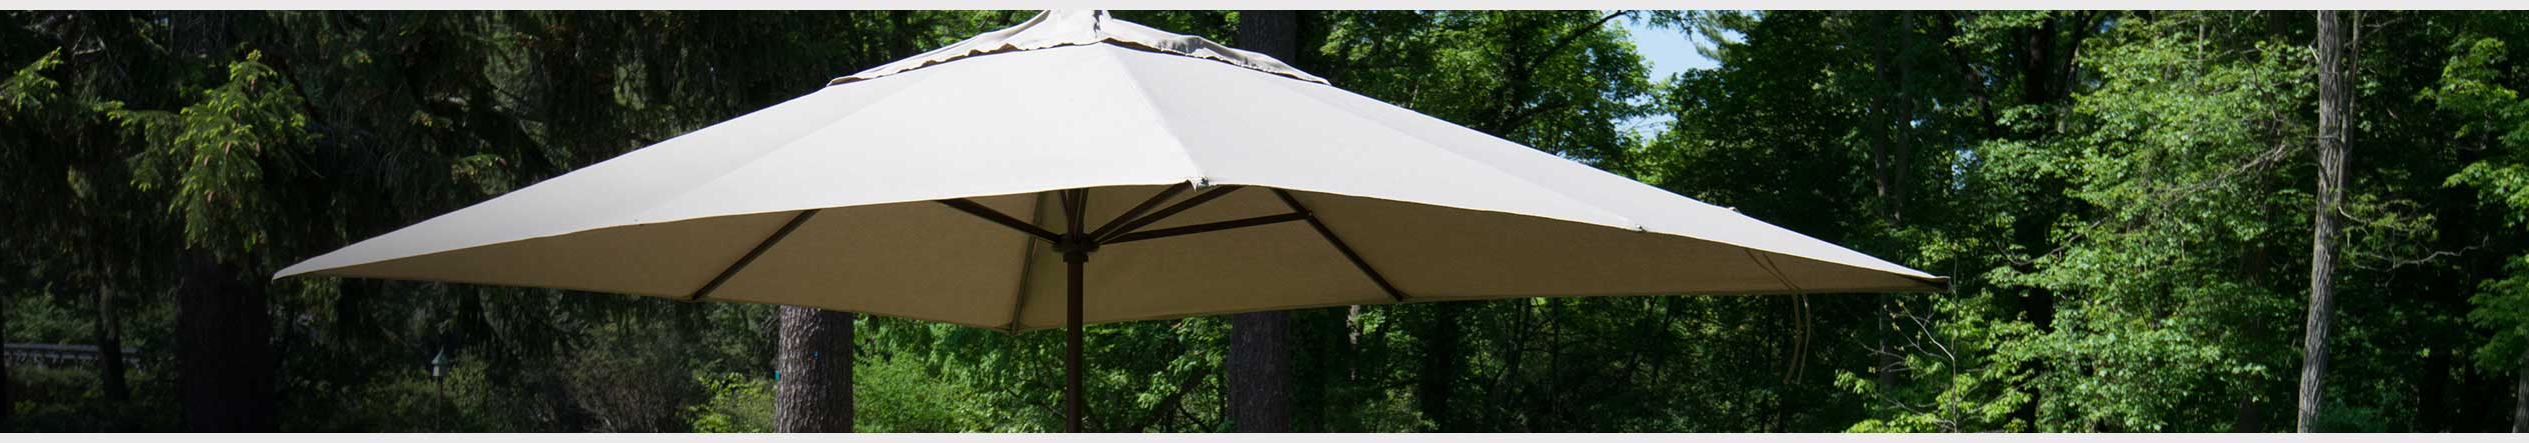 Current Outdoor And Patio Umbrellas At Jordan's Furniture In Ct, Ma, Nh And Ri Throughout New Haven Market Umbrellas (View 14 of 20)